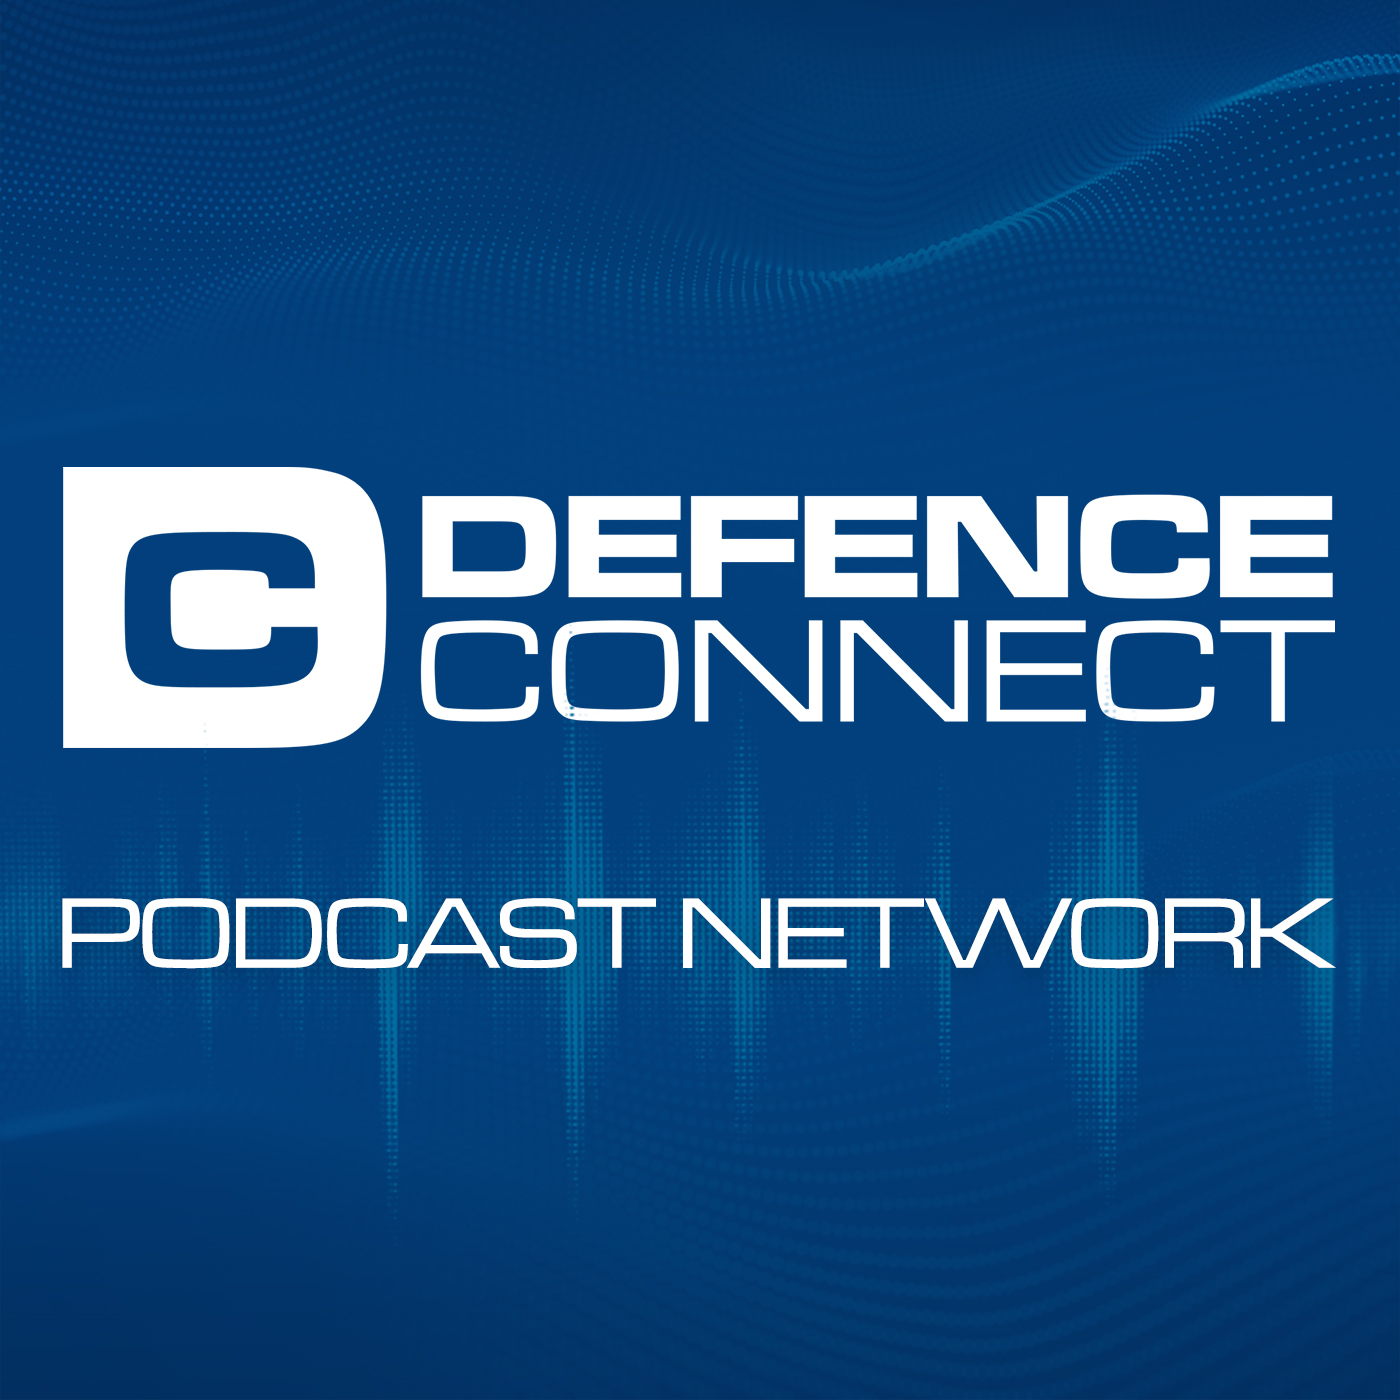 Defence Connect Podcast Network show art